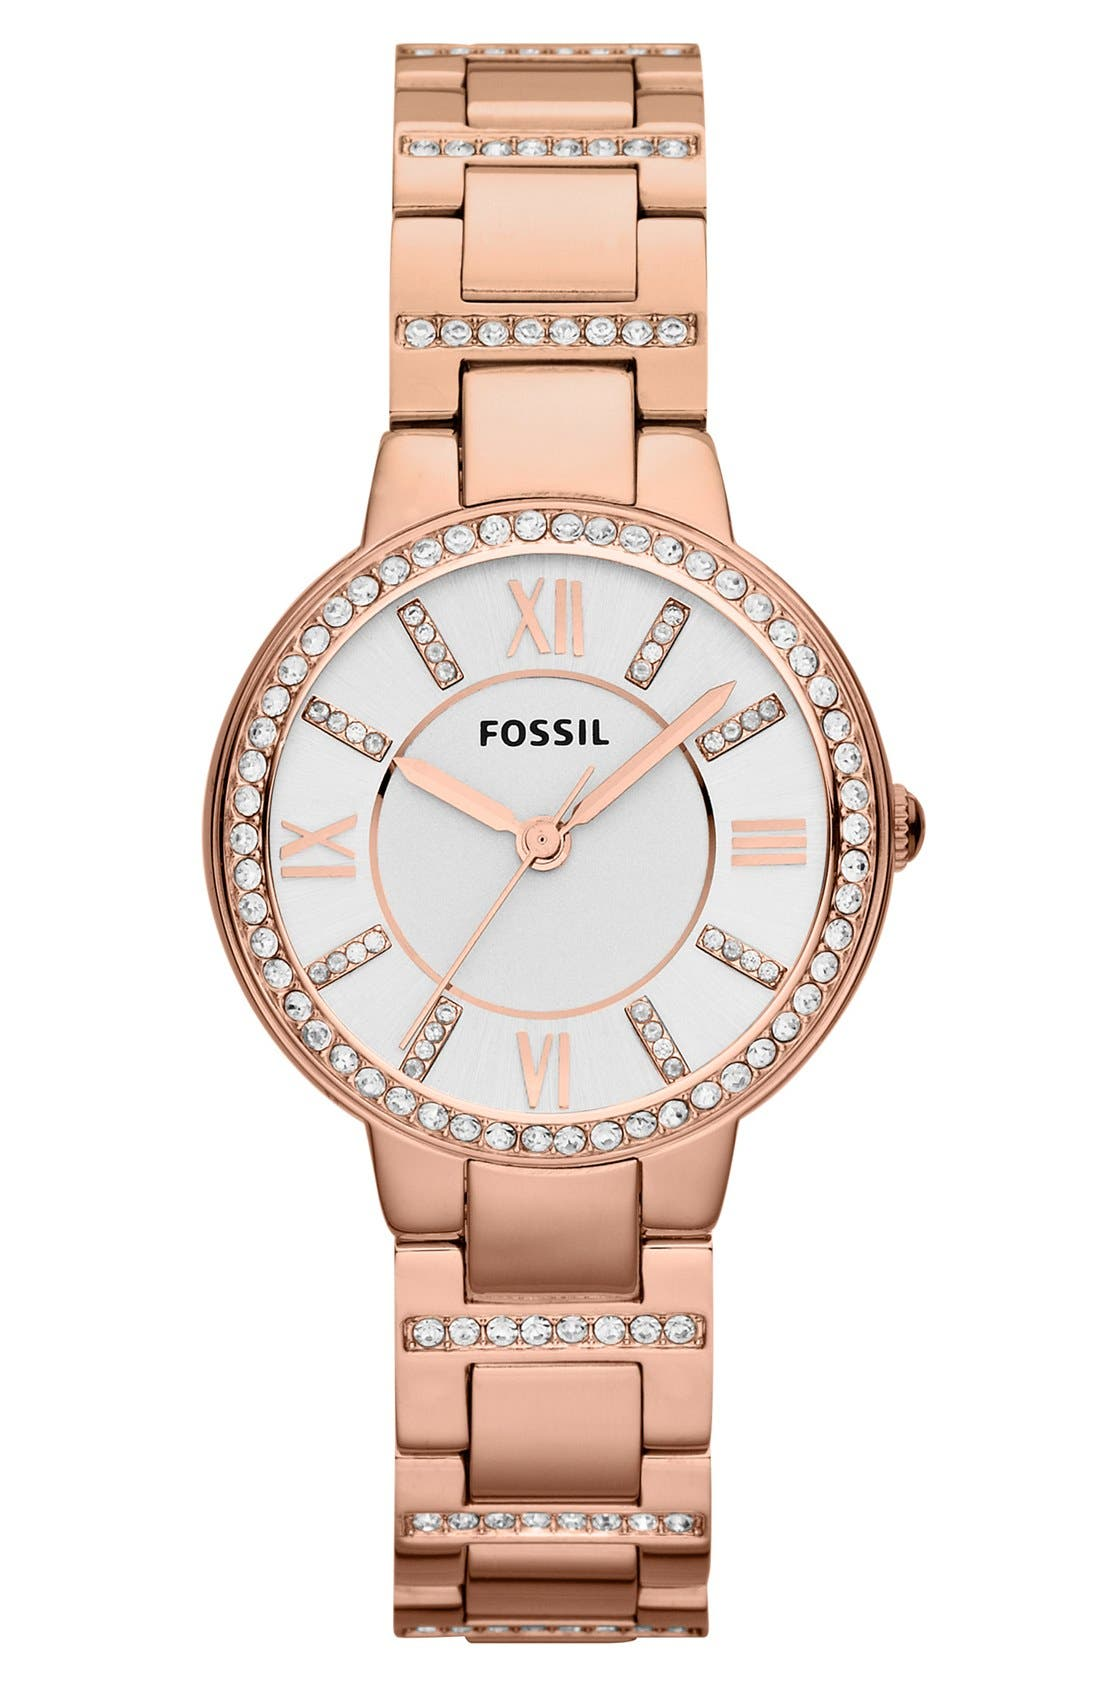 FOSSIL 'Virginia' Crystal Accent Bracelet Watch, 30mm, Main, color, ROSE GOLD/ WHITE/ ROSE GOLD